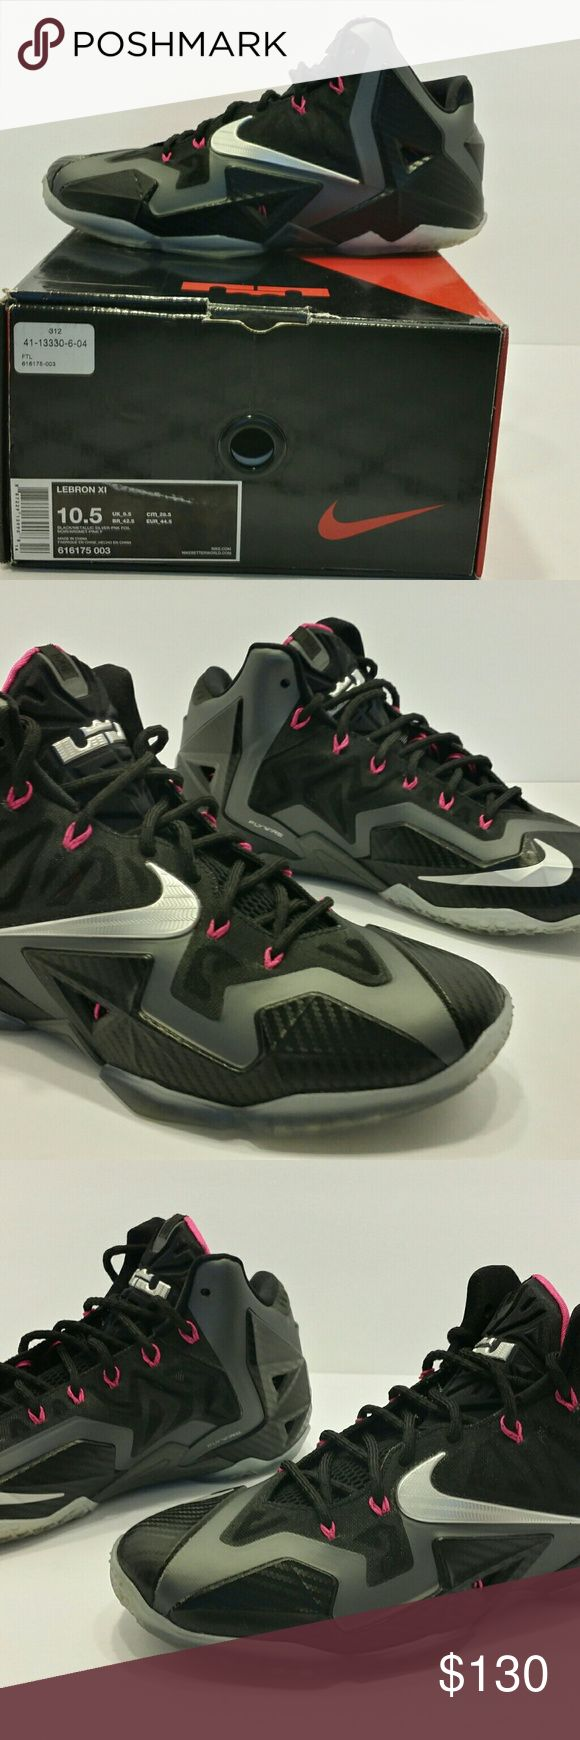 """Nike LEBRON 11 """"MIAMI NIGHT"""" 616175 003 sz 10.5 Excellent condition with original box, nice color scheme, good shoe to put in your collection Nike Shoes Athletic Shoes"""